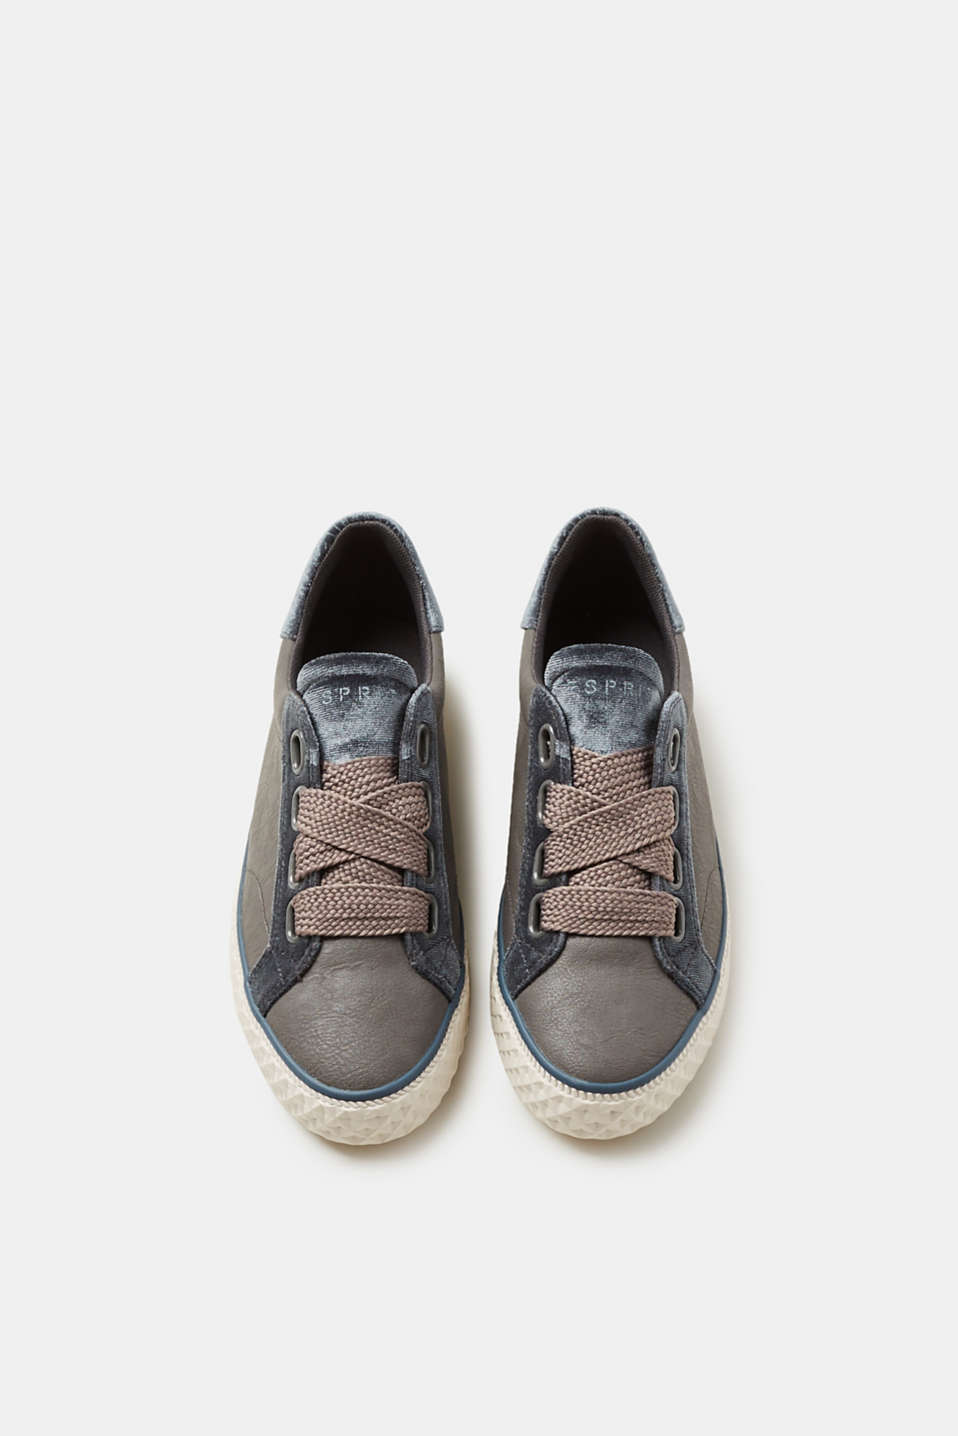 Trainers in imitation leather with a velvet trim